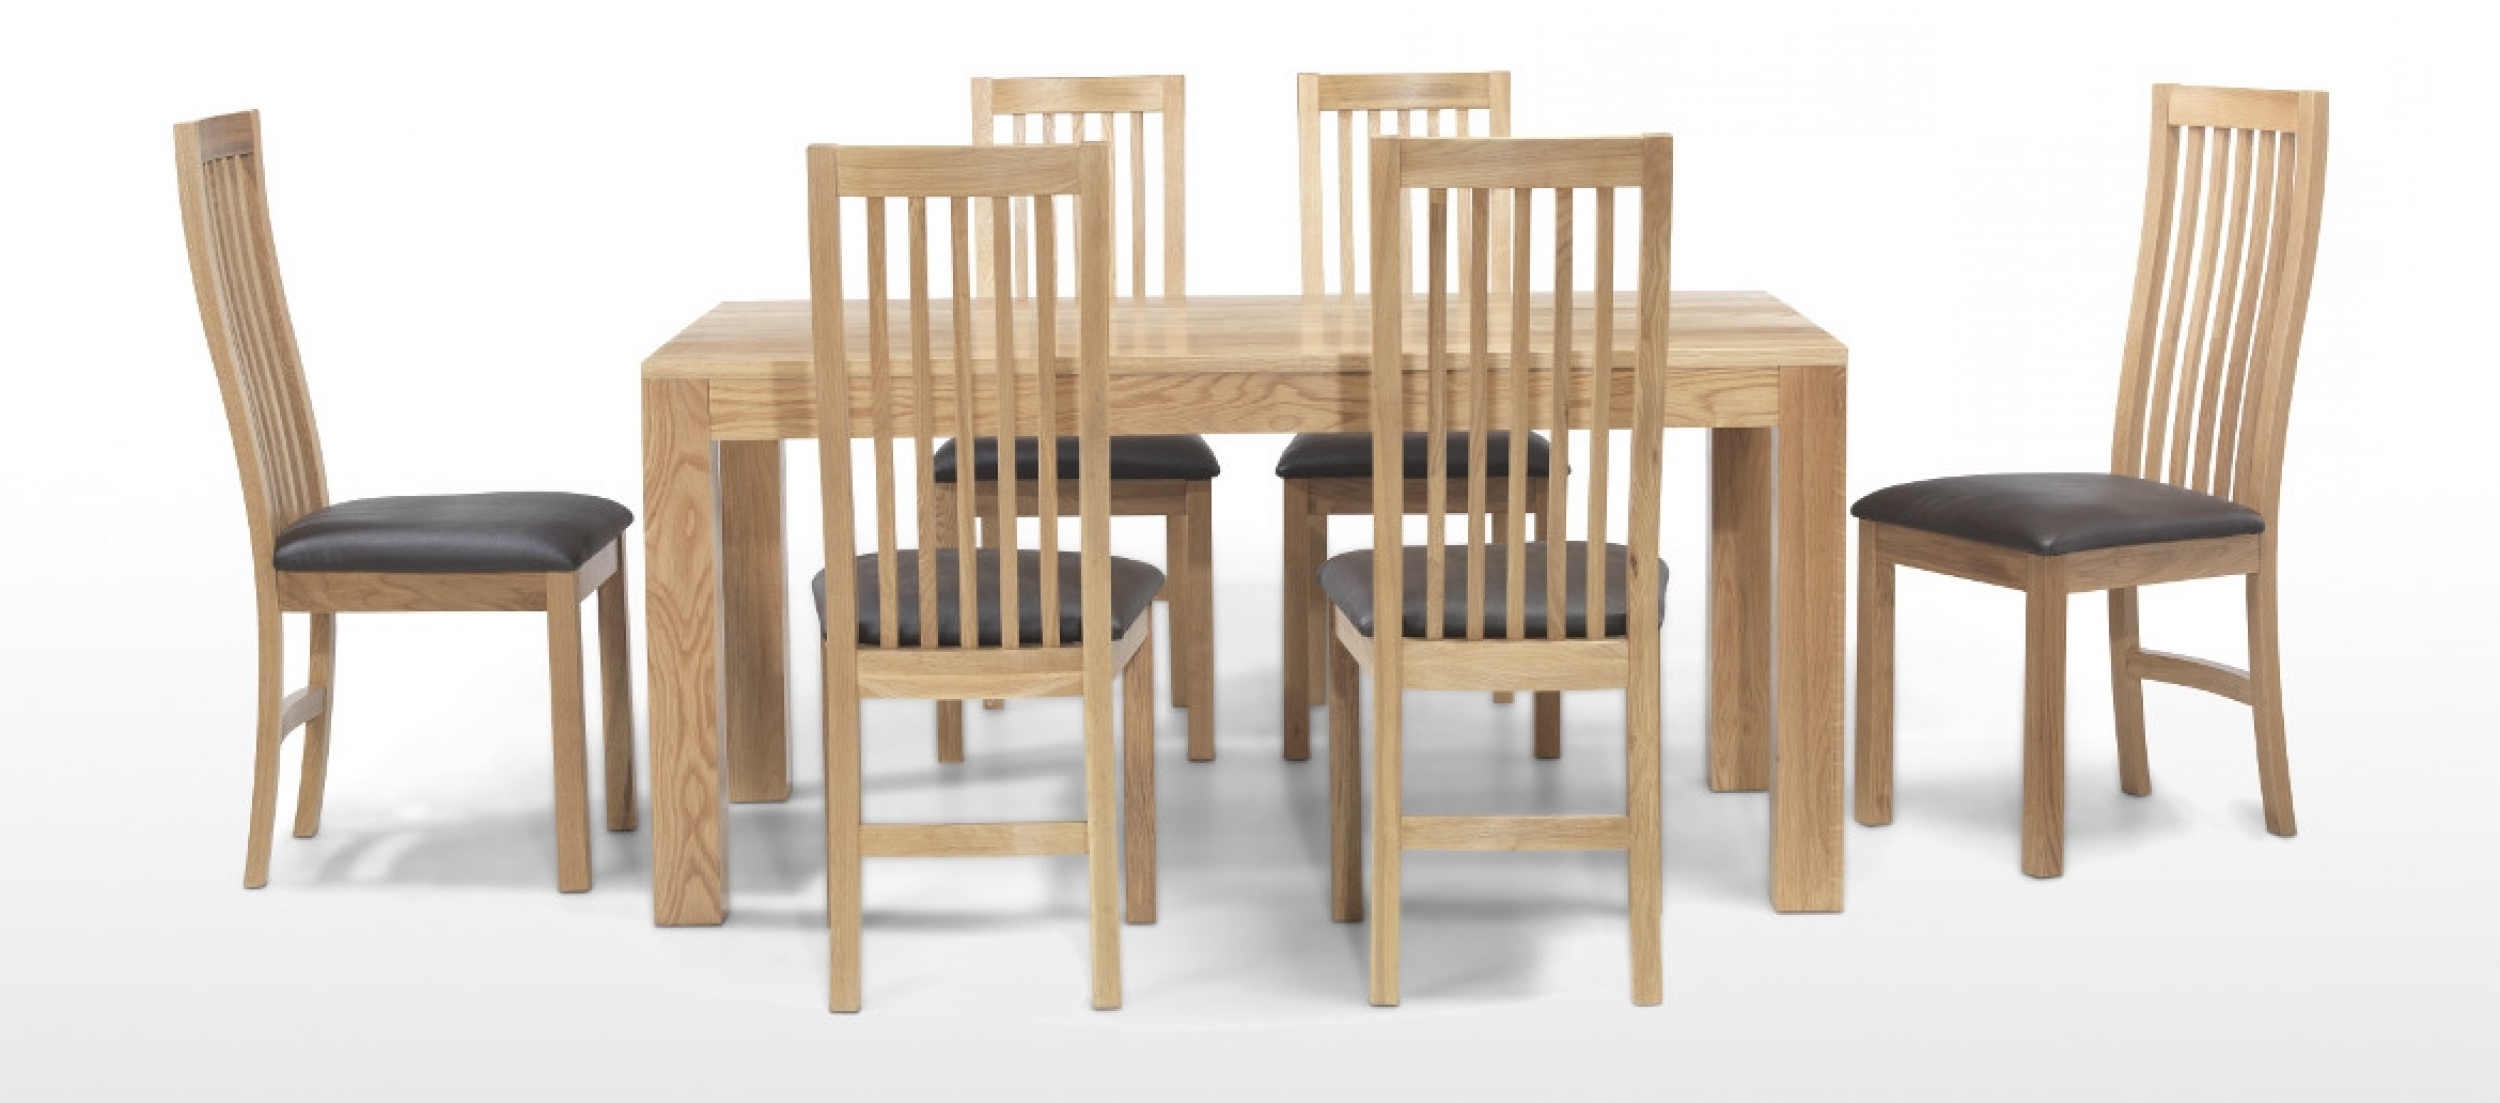 Quercus Living Pertaining To Extendable Oak Dining Tables And Chairs (View 20 of 25)